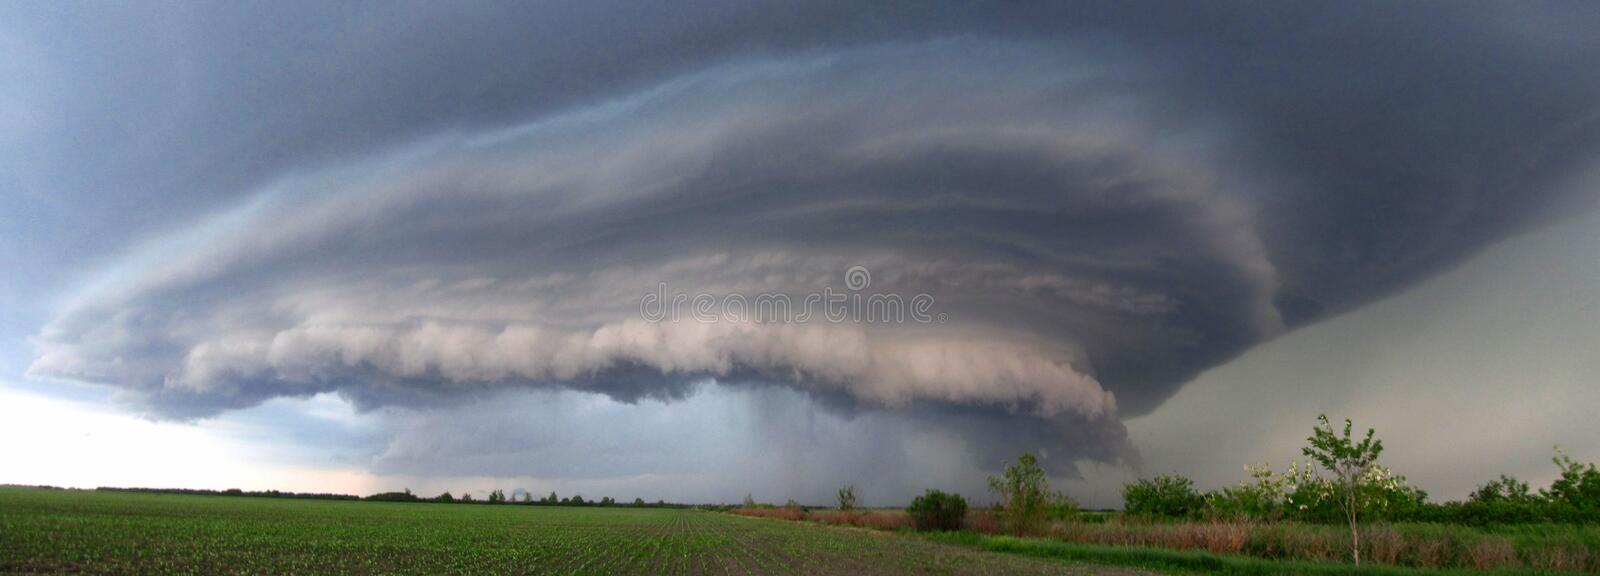 Extreme supercell thunderstorm, school example of supercell royalty free stock photography